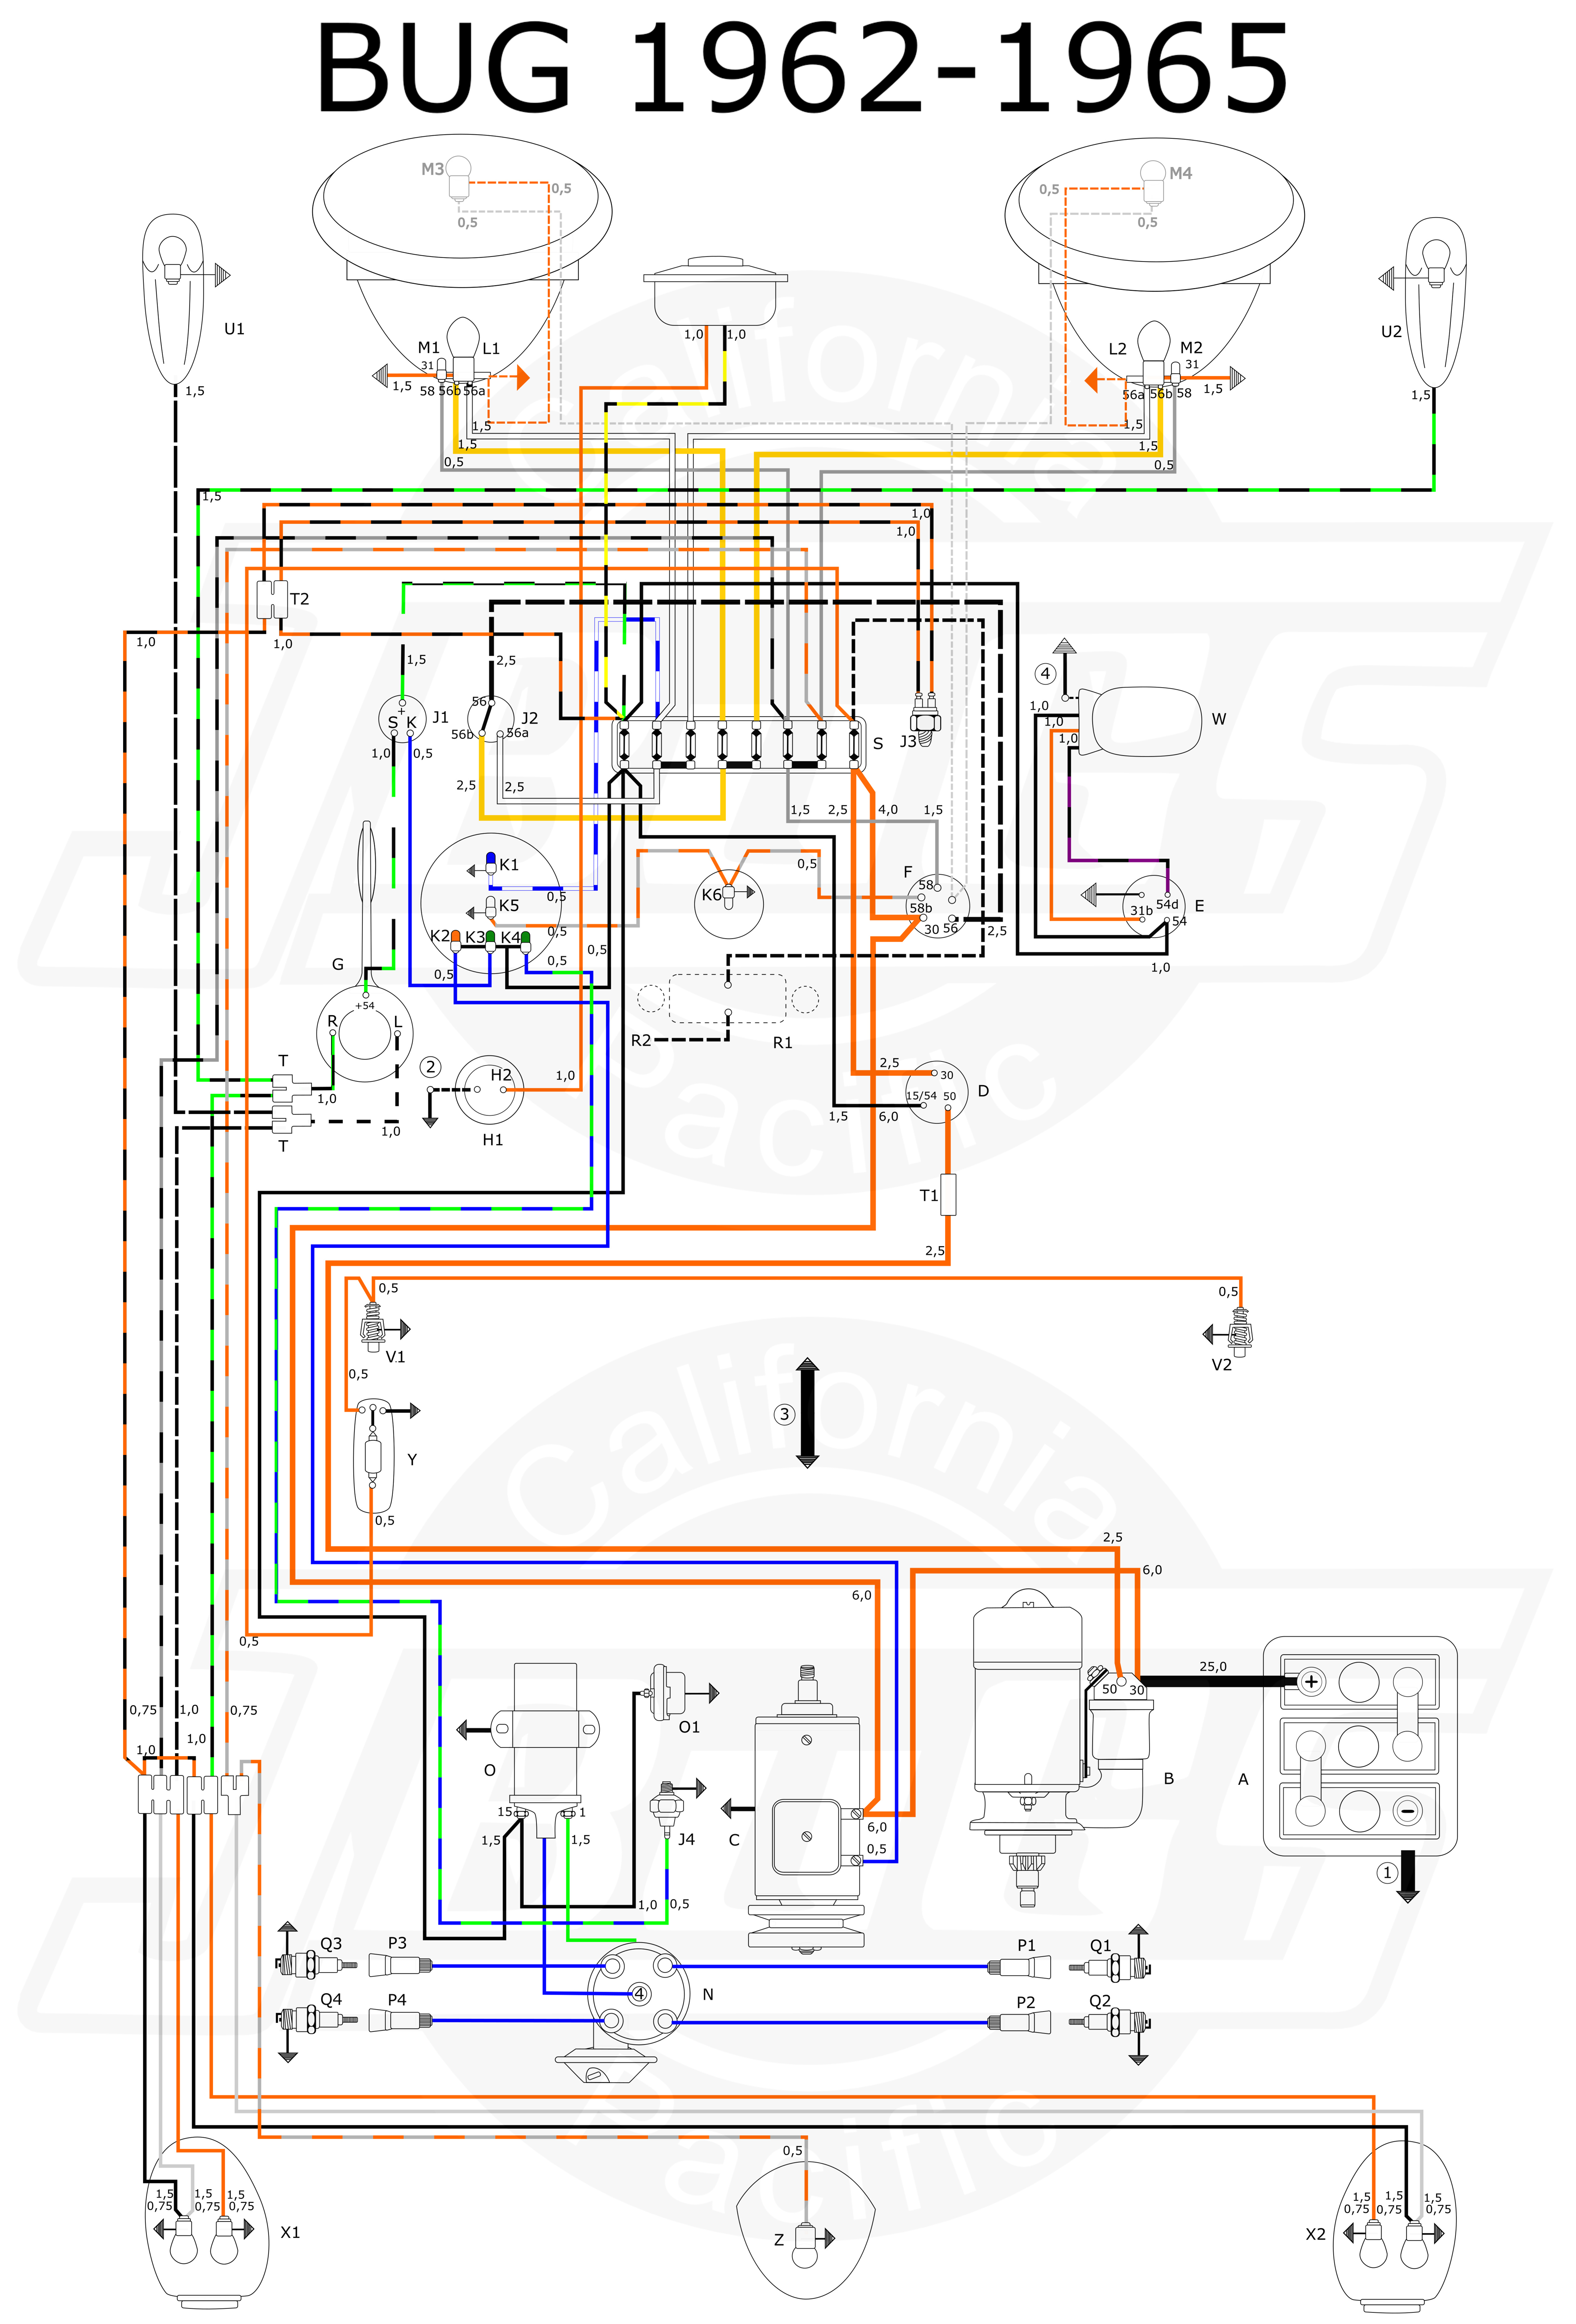 79 buick regal fuse box diagram wiring library 1996 buick regal green diagram of 1996 buick regal fuse box experts of wiring diagram \\u2022 1994 buick regal